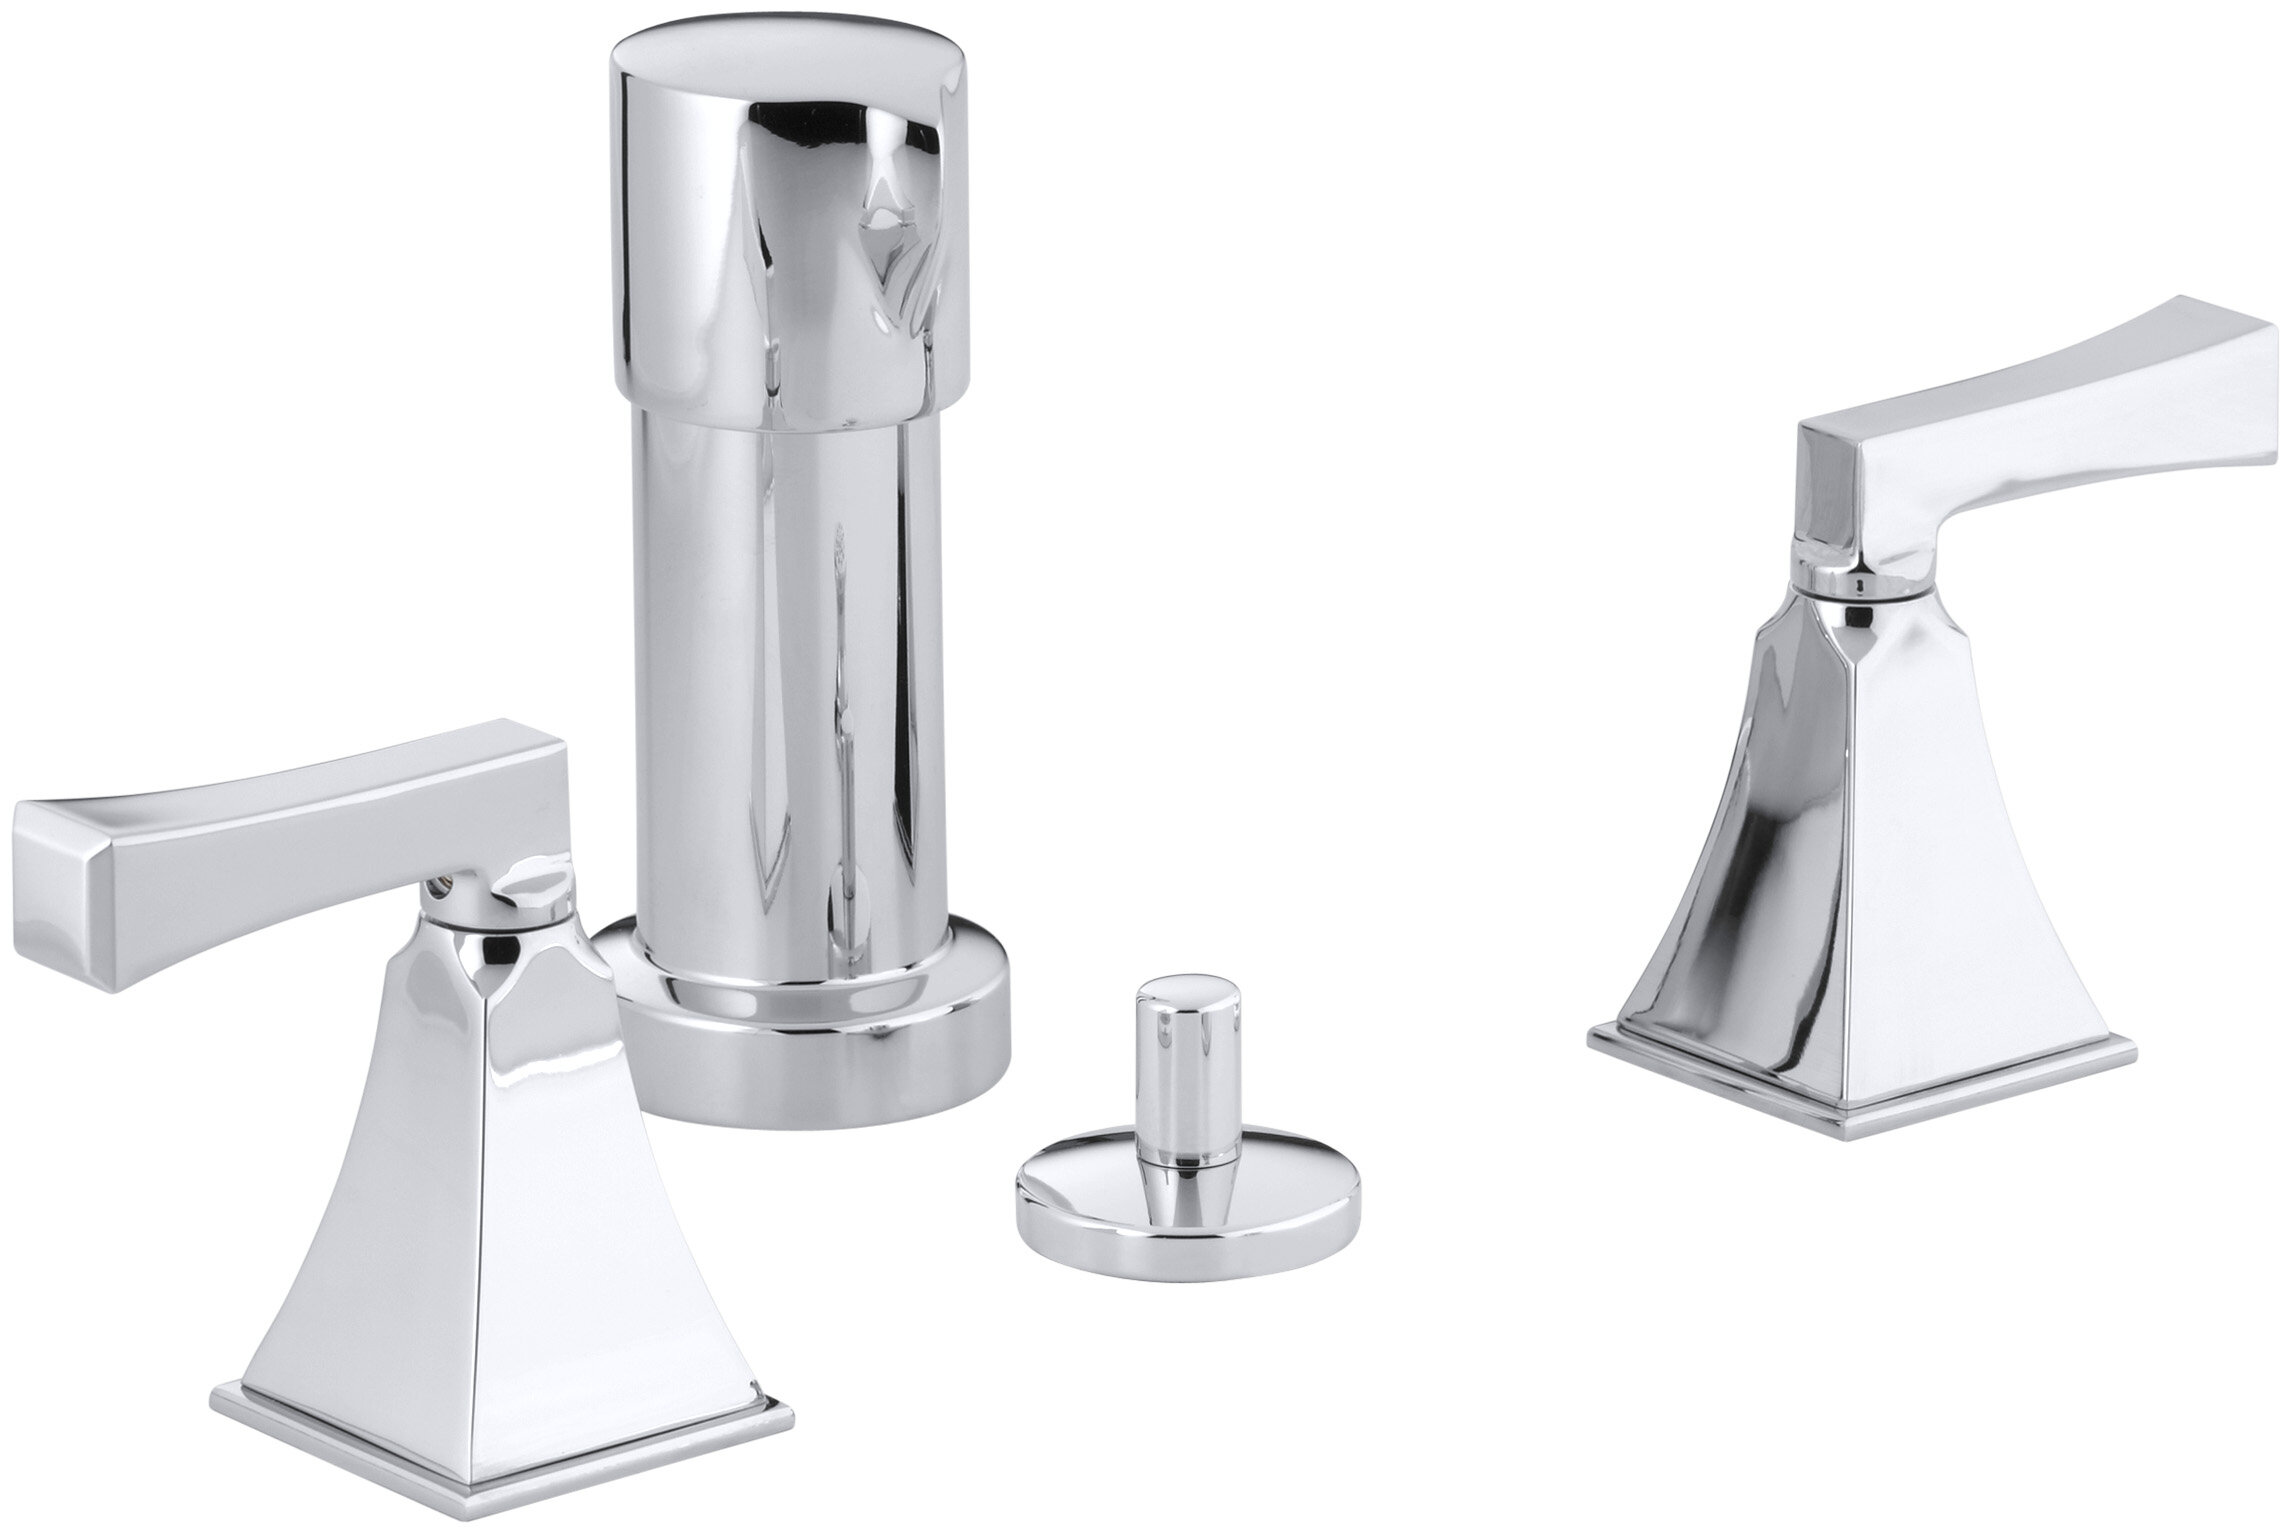 Kohler Memoirs Stately Vertical Spray Bidet Faucet With Deco Lever Handles Wayfair